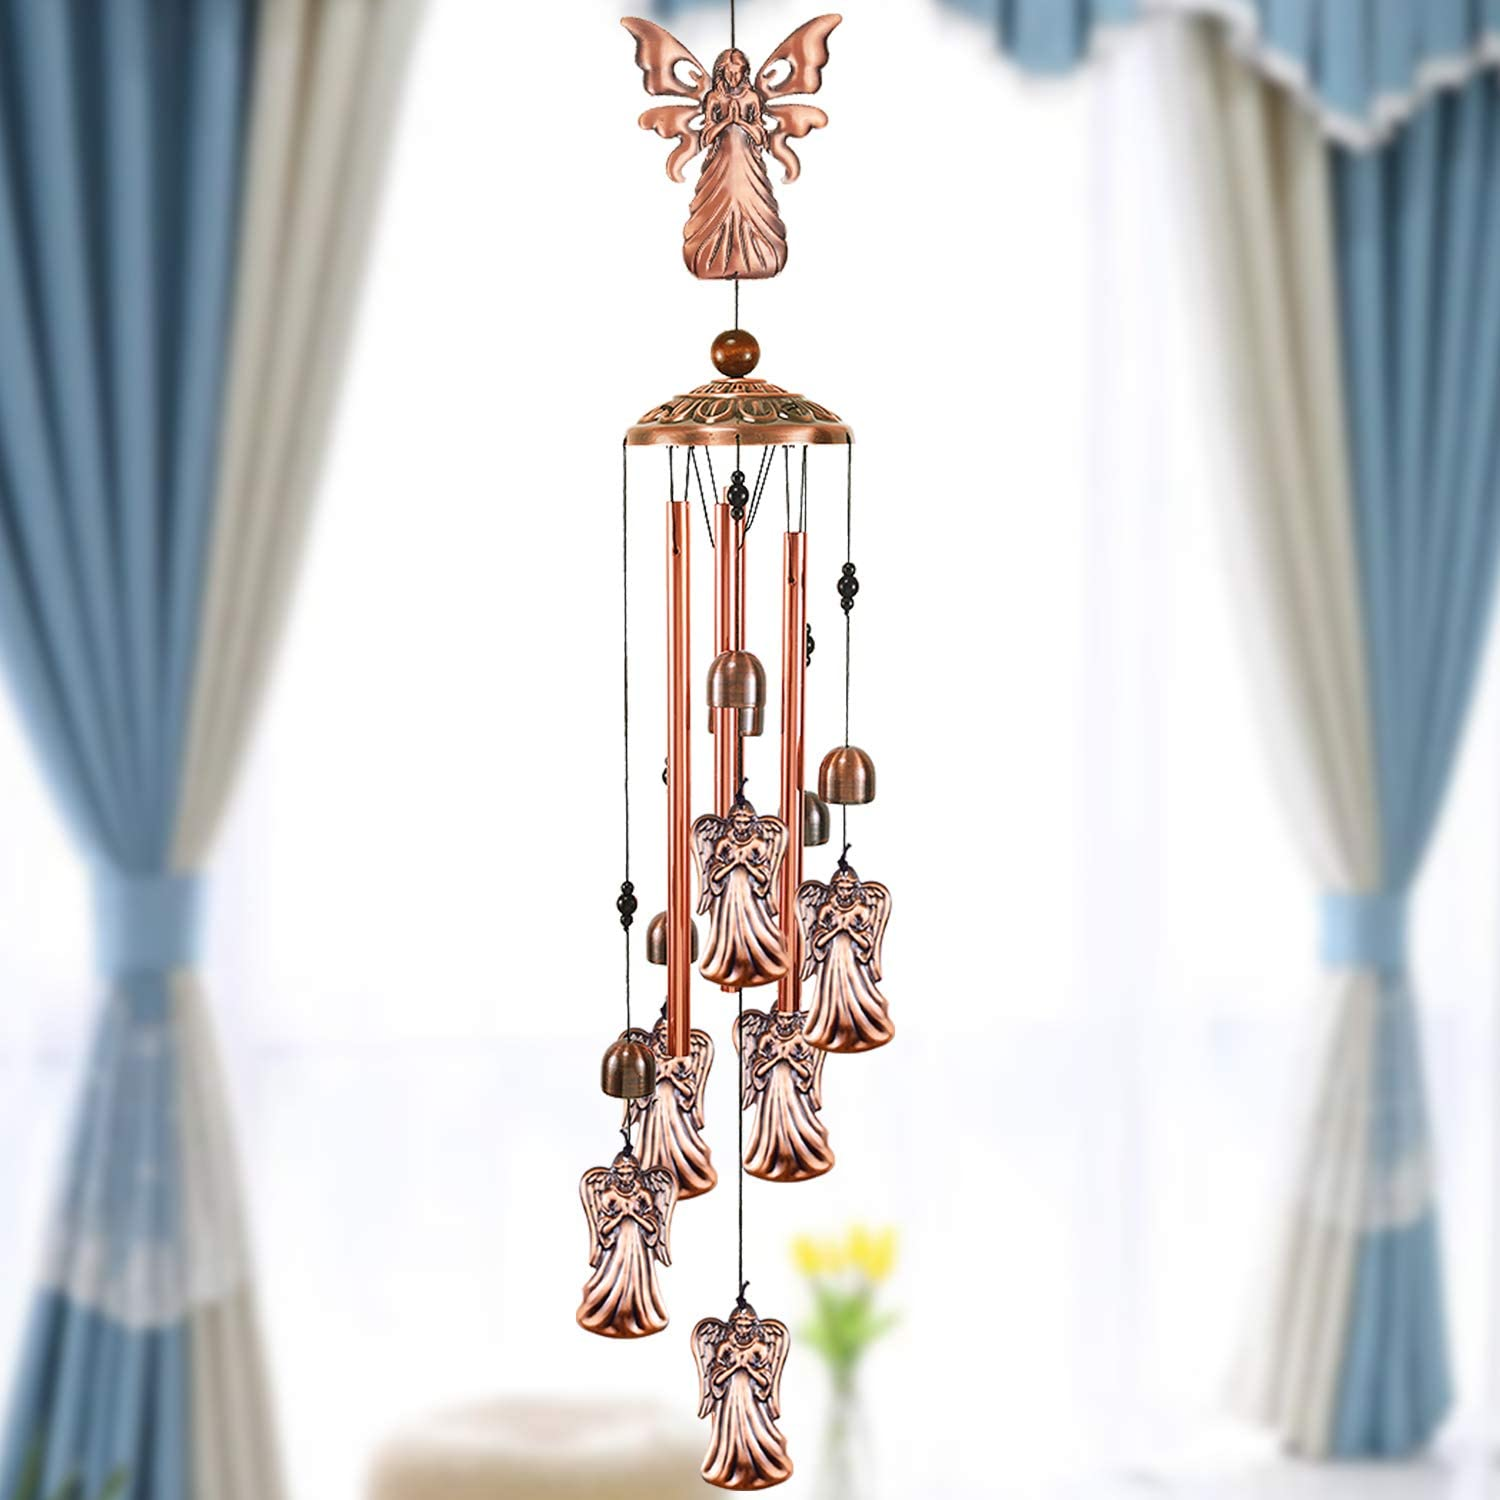 YMXBL Wind Chime Outdoor Angel Wind Chimes Decoration, Angel Wind Bell Indoor Decor, Angels Windchime With 4 Tubes & 6 Bells, Angel Wind Catcher, Aluminum Chime, Garden Mobile Wind Chime Gifts for Mom